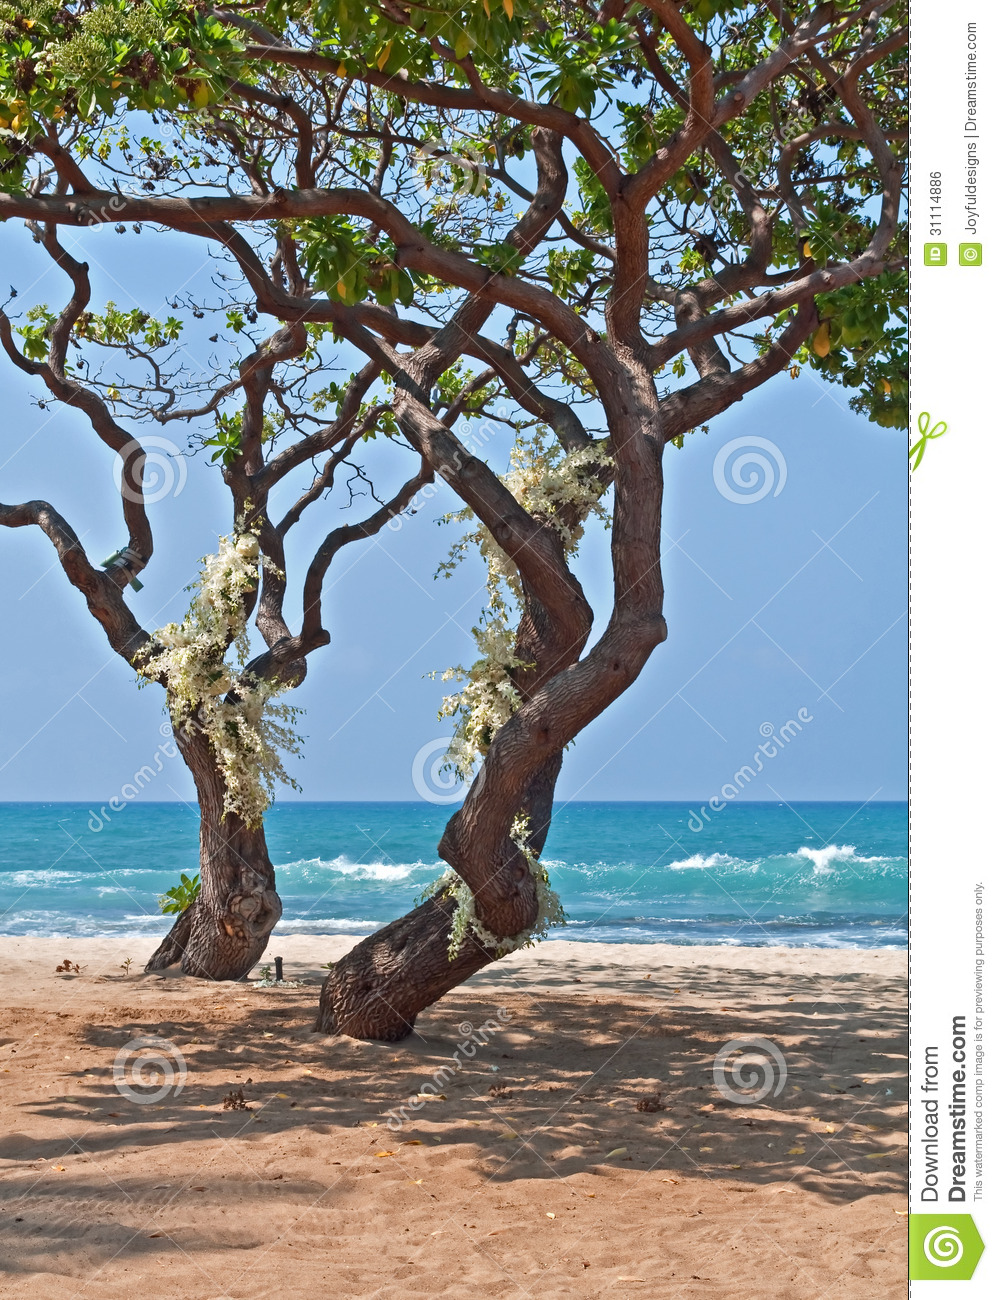 Tropical Heliotrope Trees With White Orchids On Beach